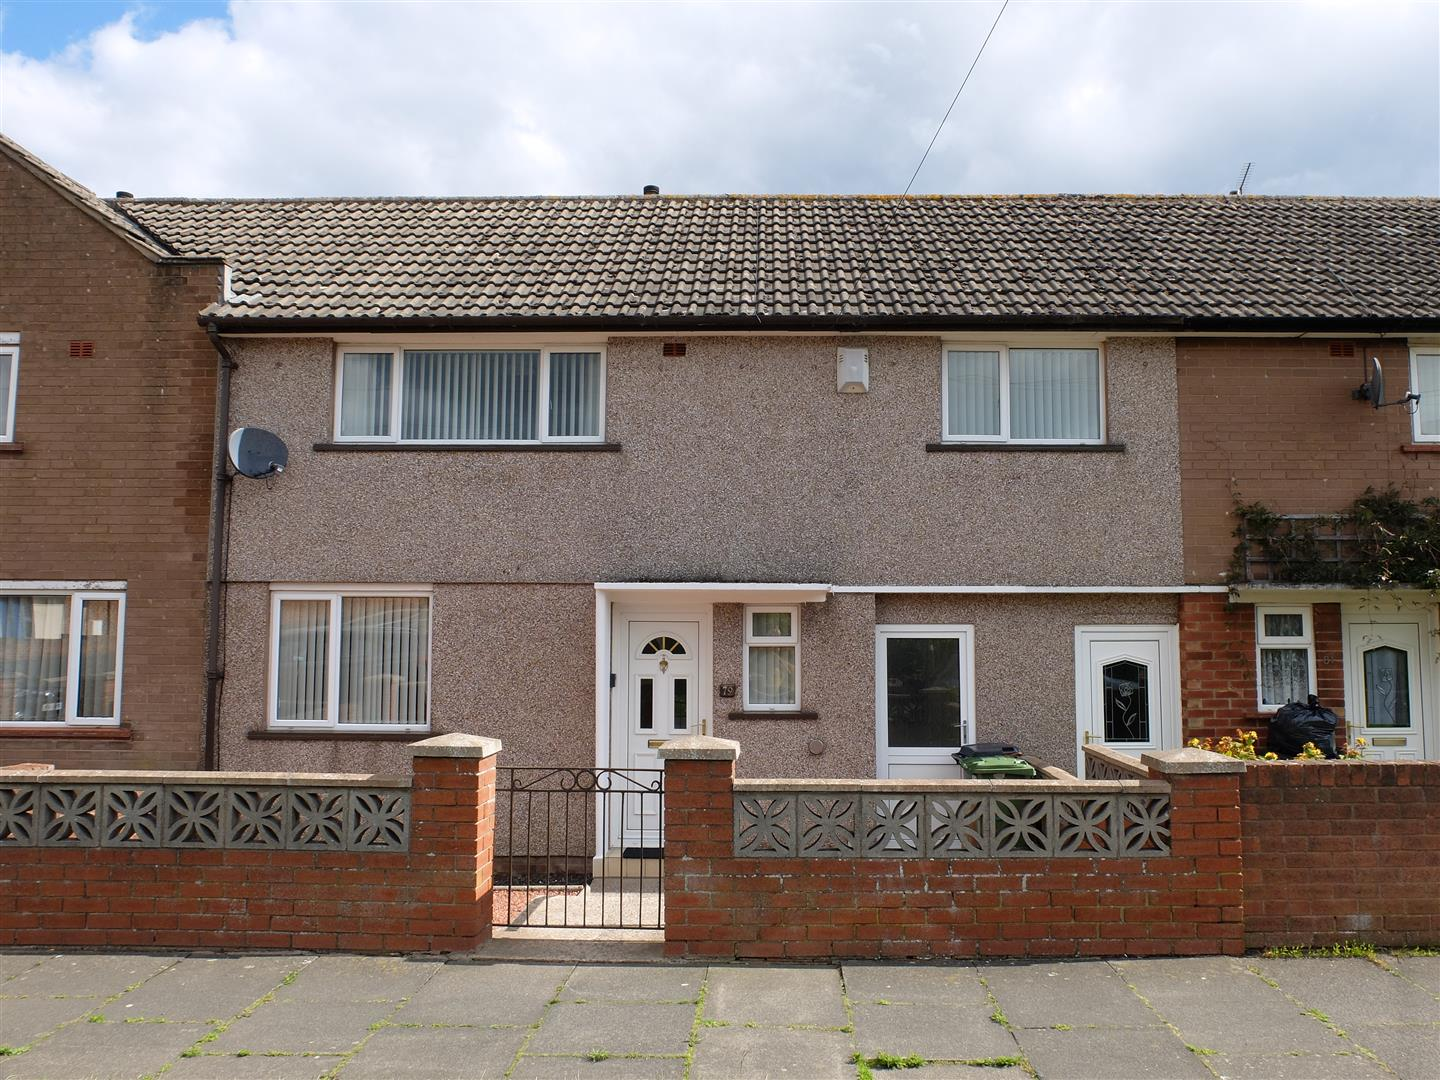 79 Westrigg Road Carlisle 3 Bedrooms House - Mid Terrace For Sale